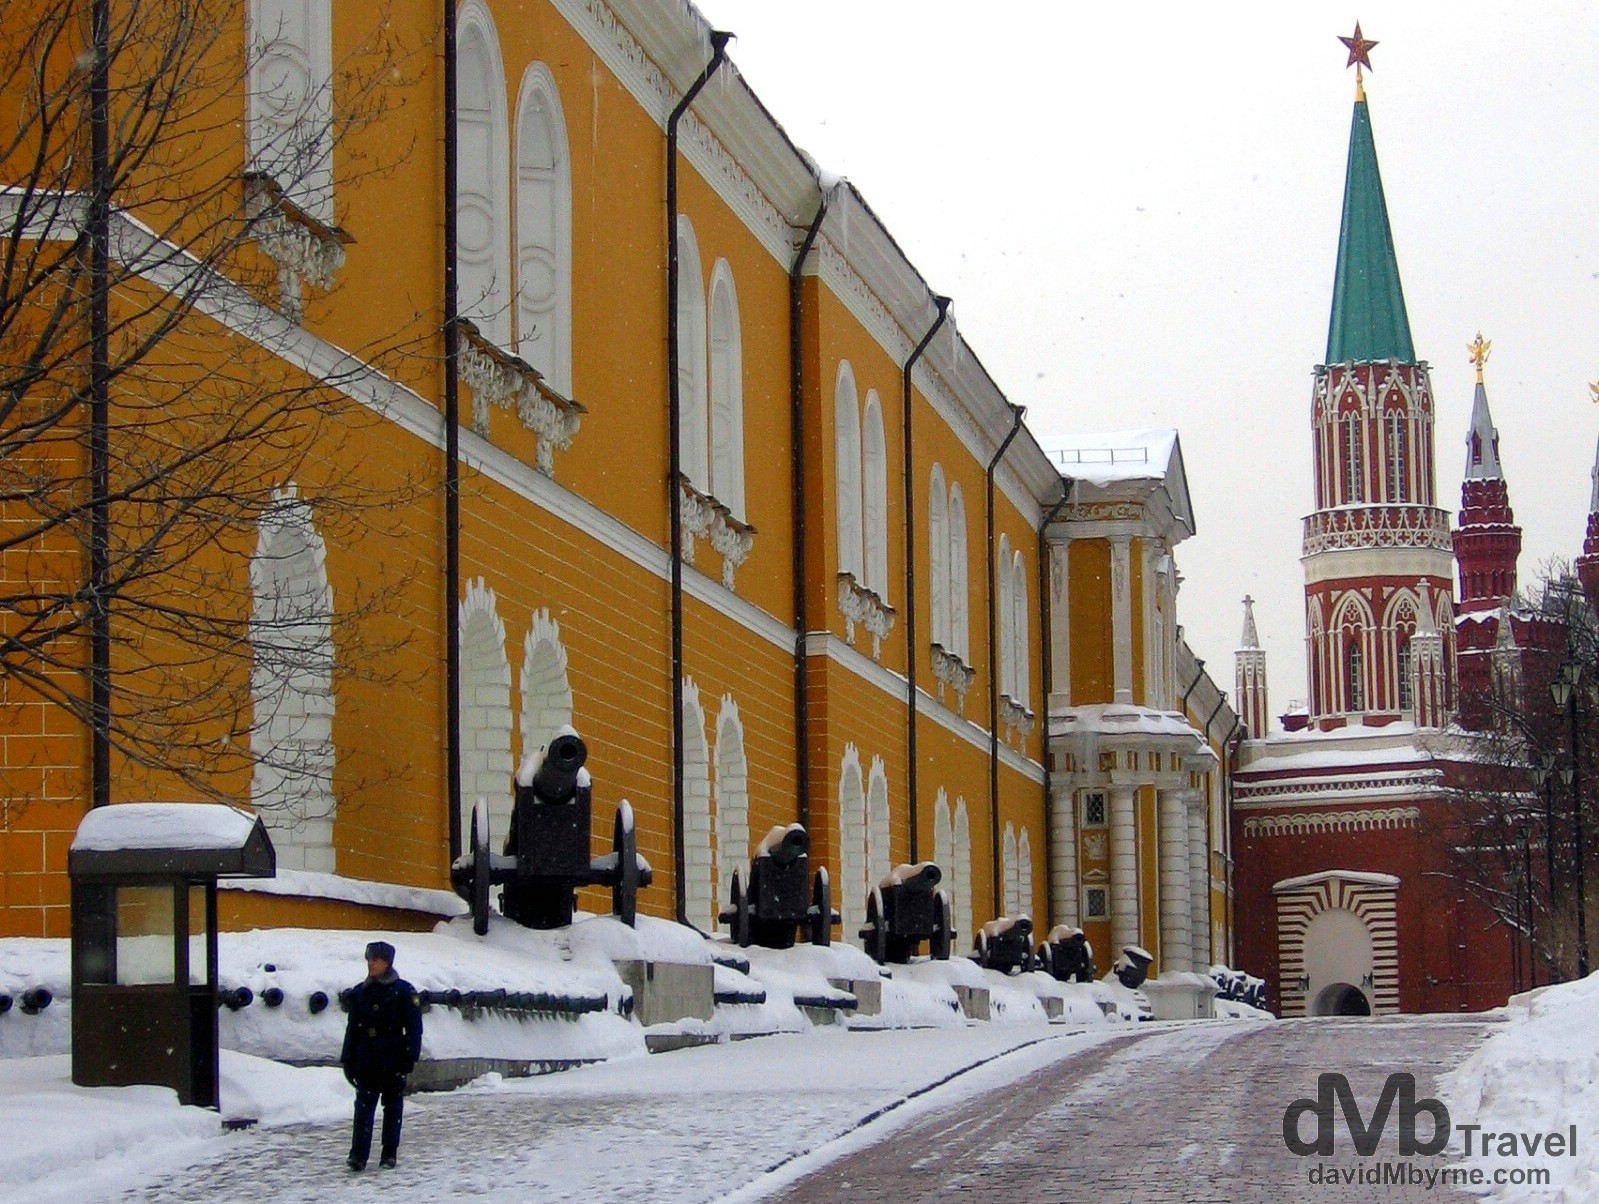 Inside the grounds of the Kremlin in Moscow, Russia. February 26, 2006.